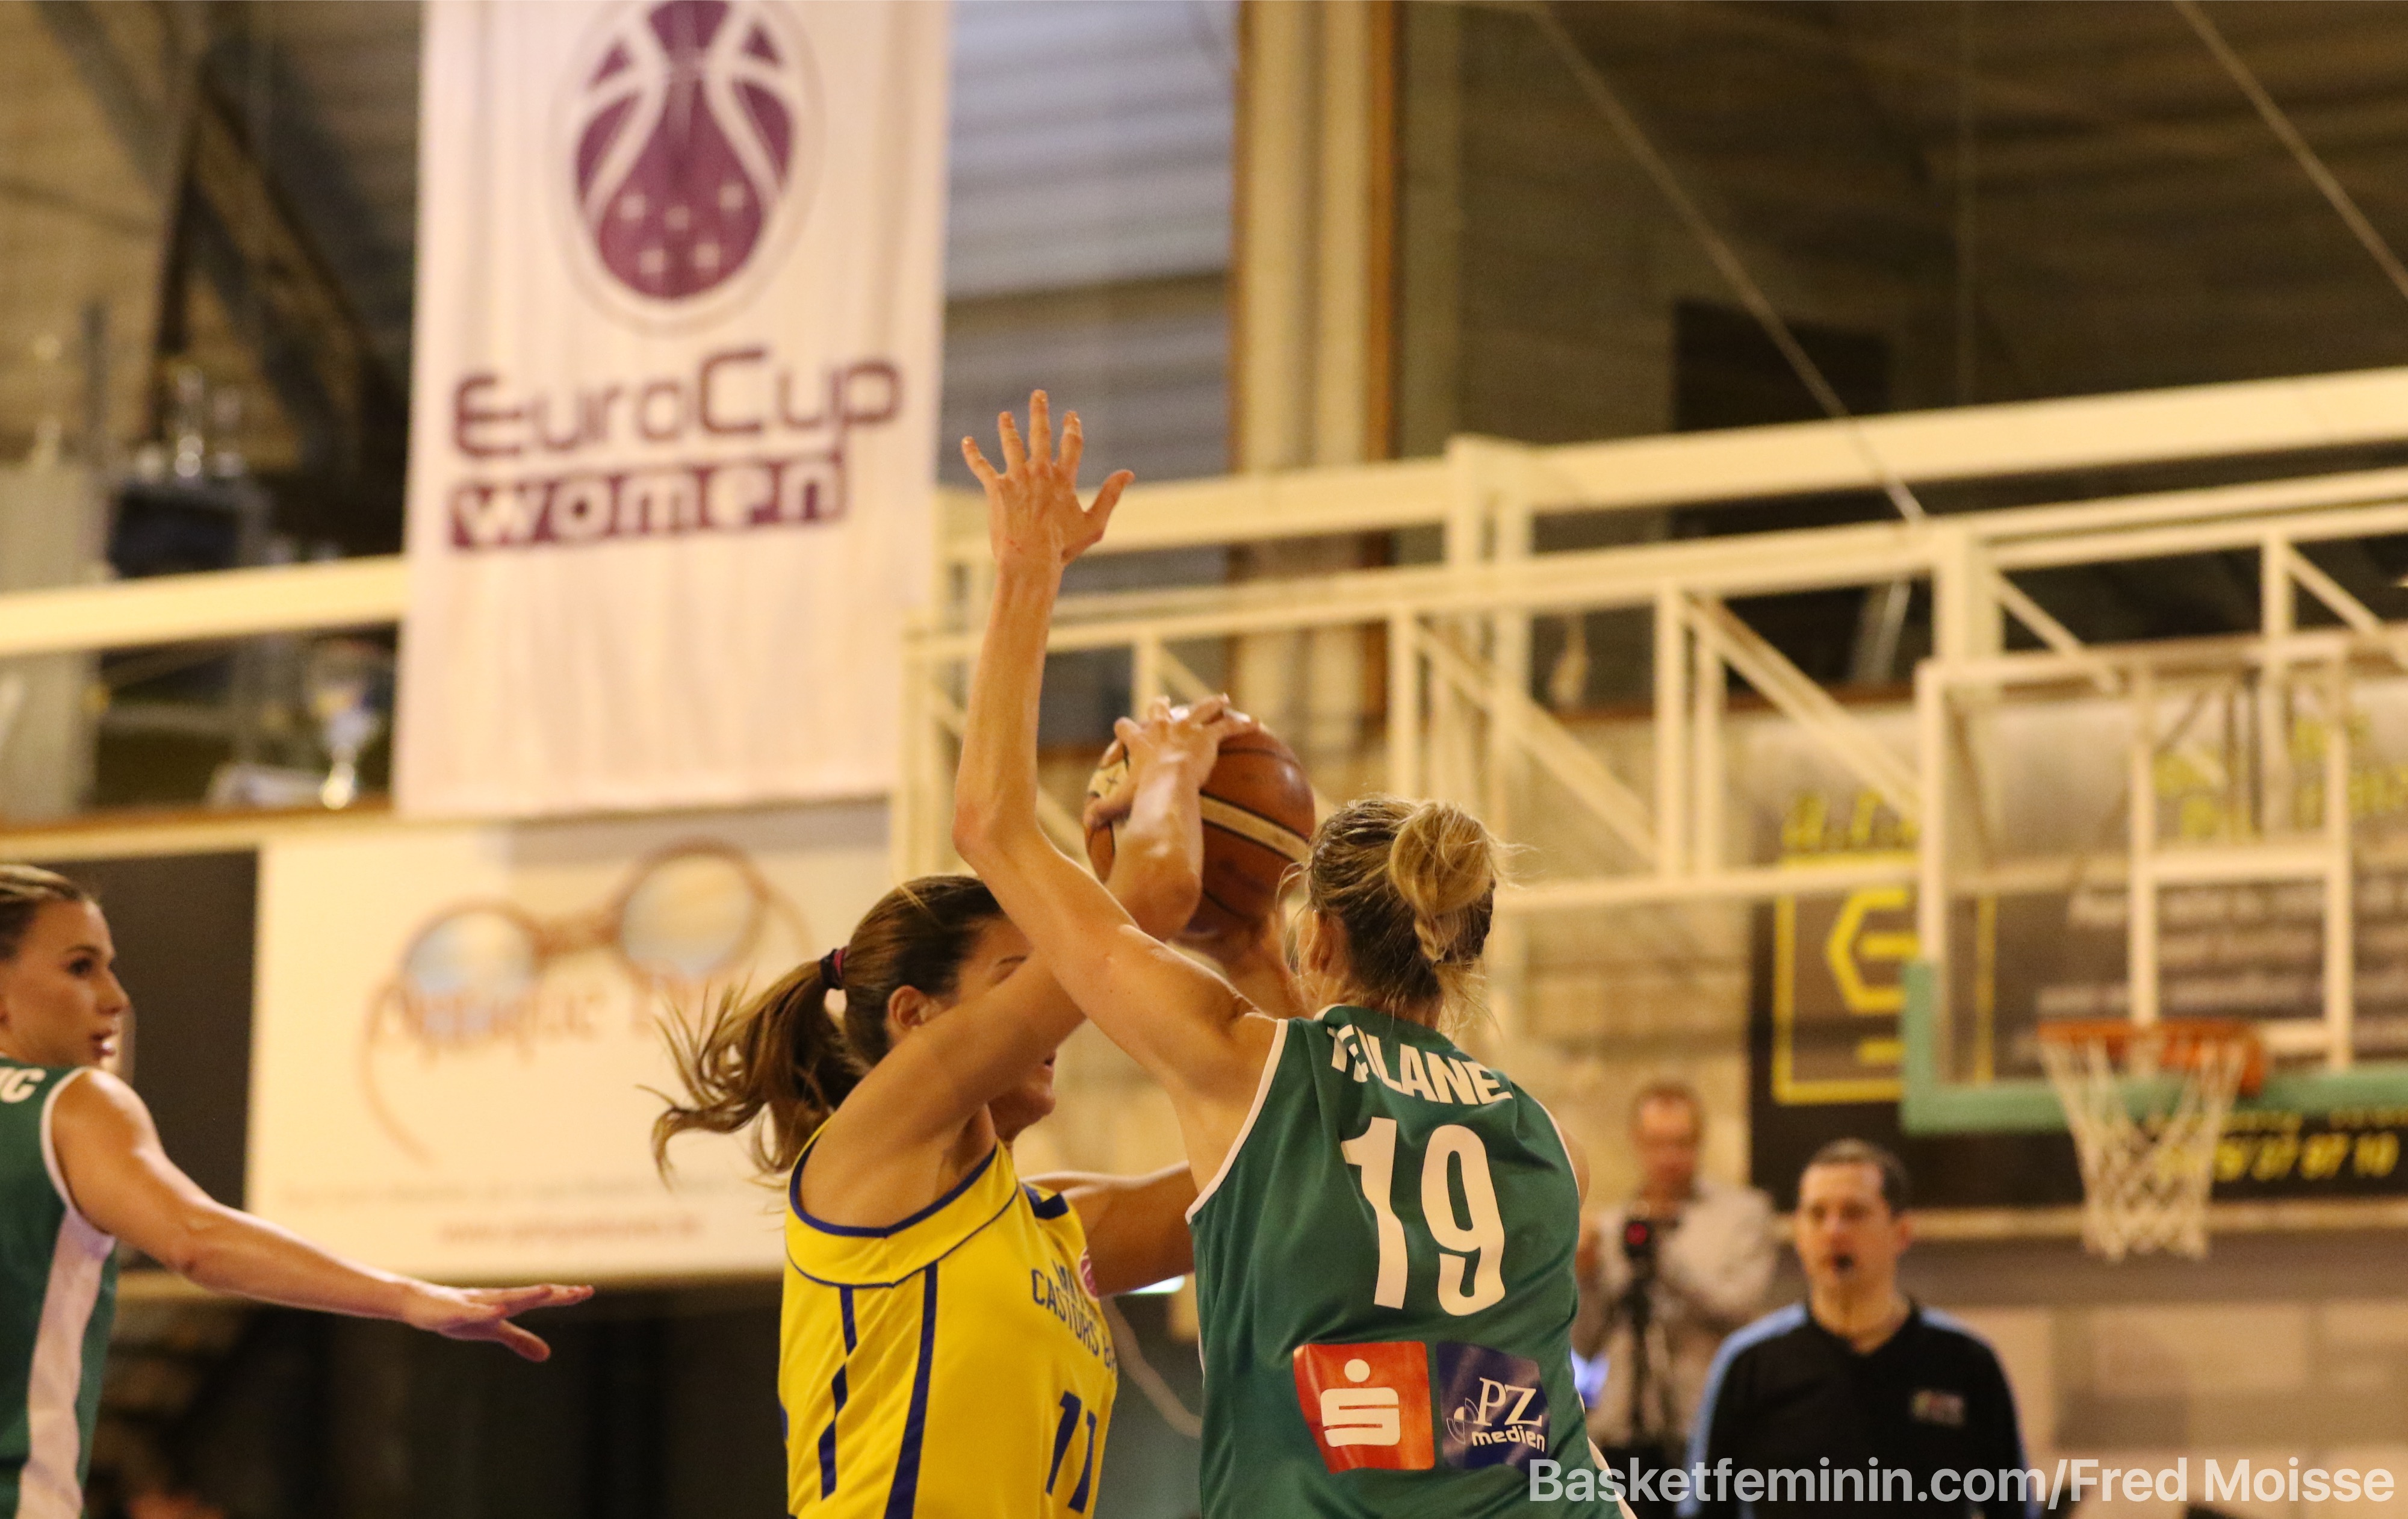 TV - Livestream - Rutrönik Stars Keltern (All) vs Mithra Castors Braine